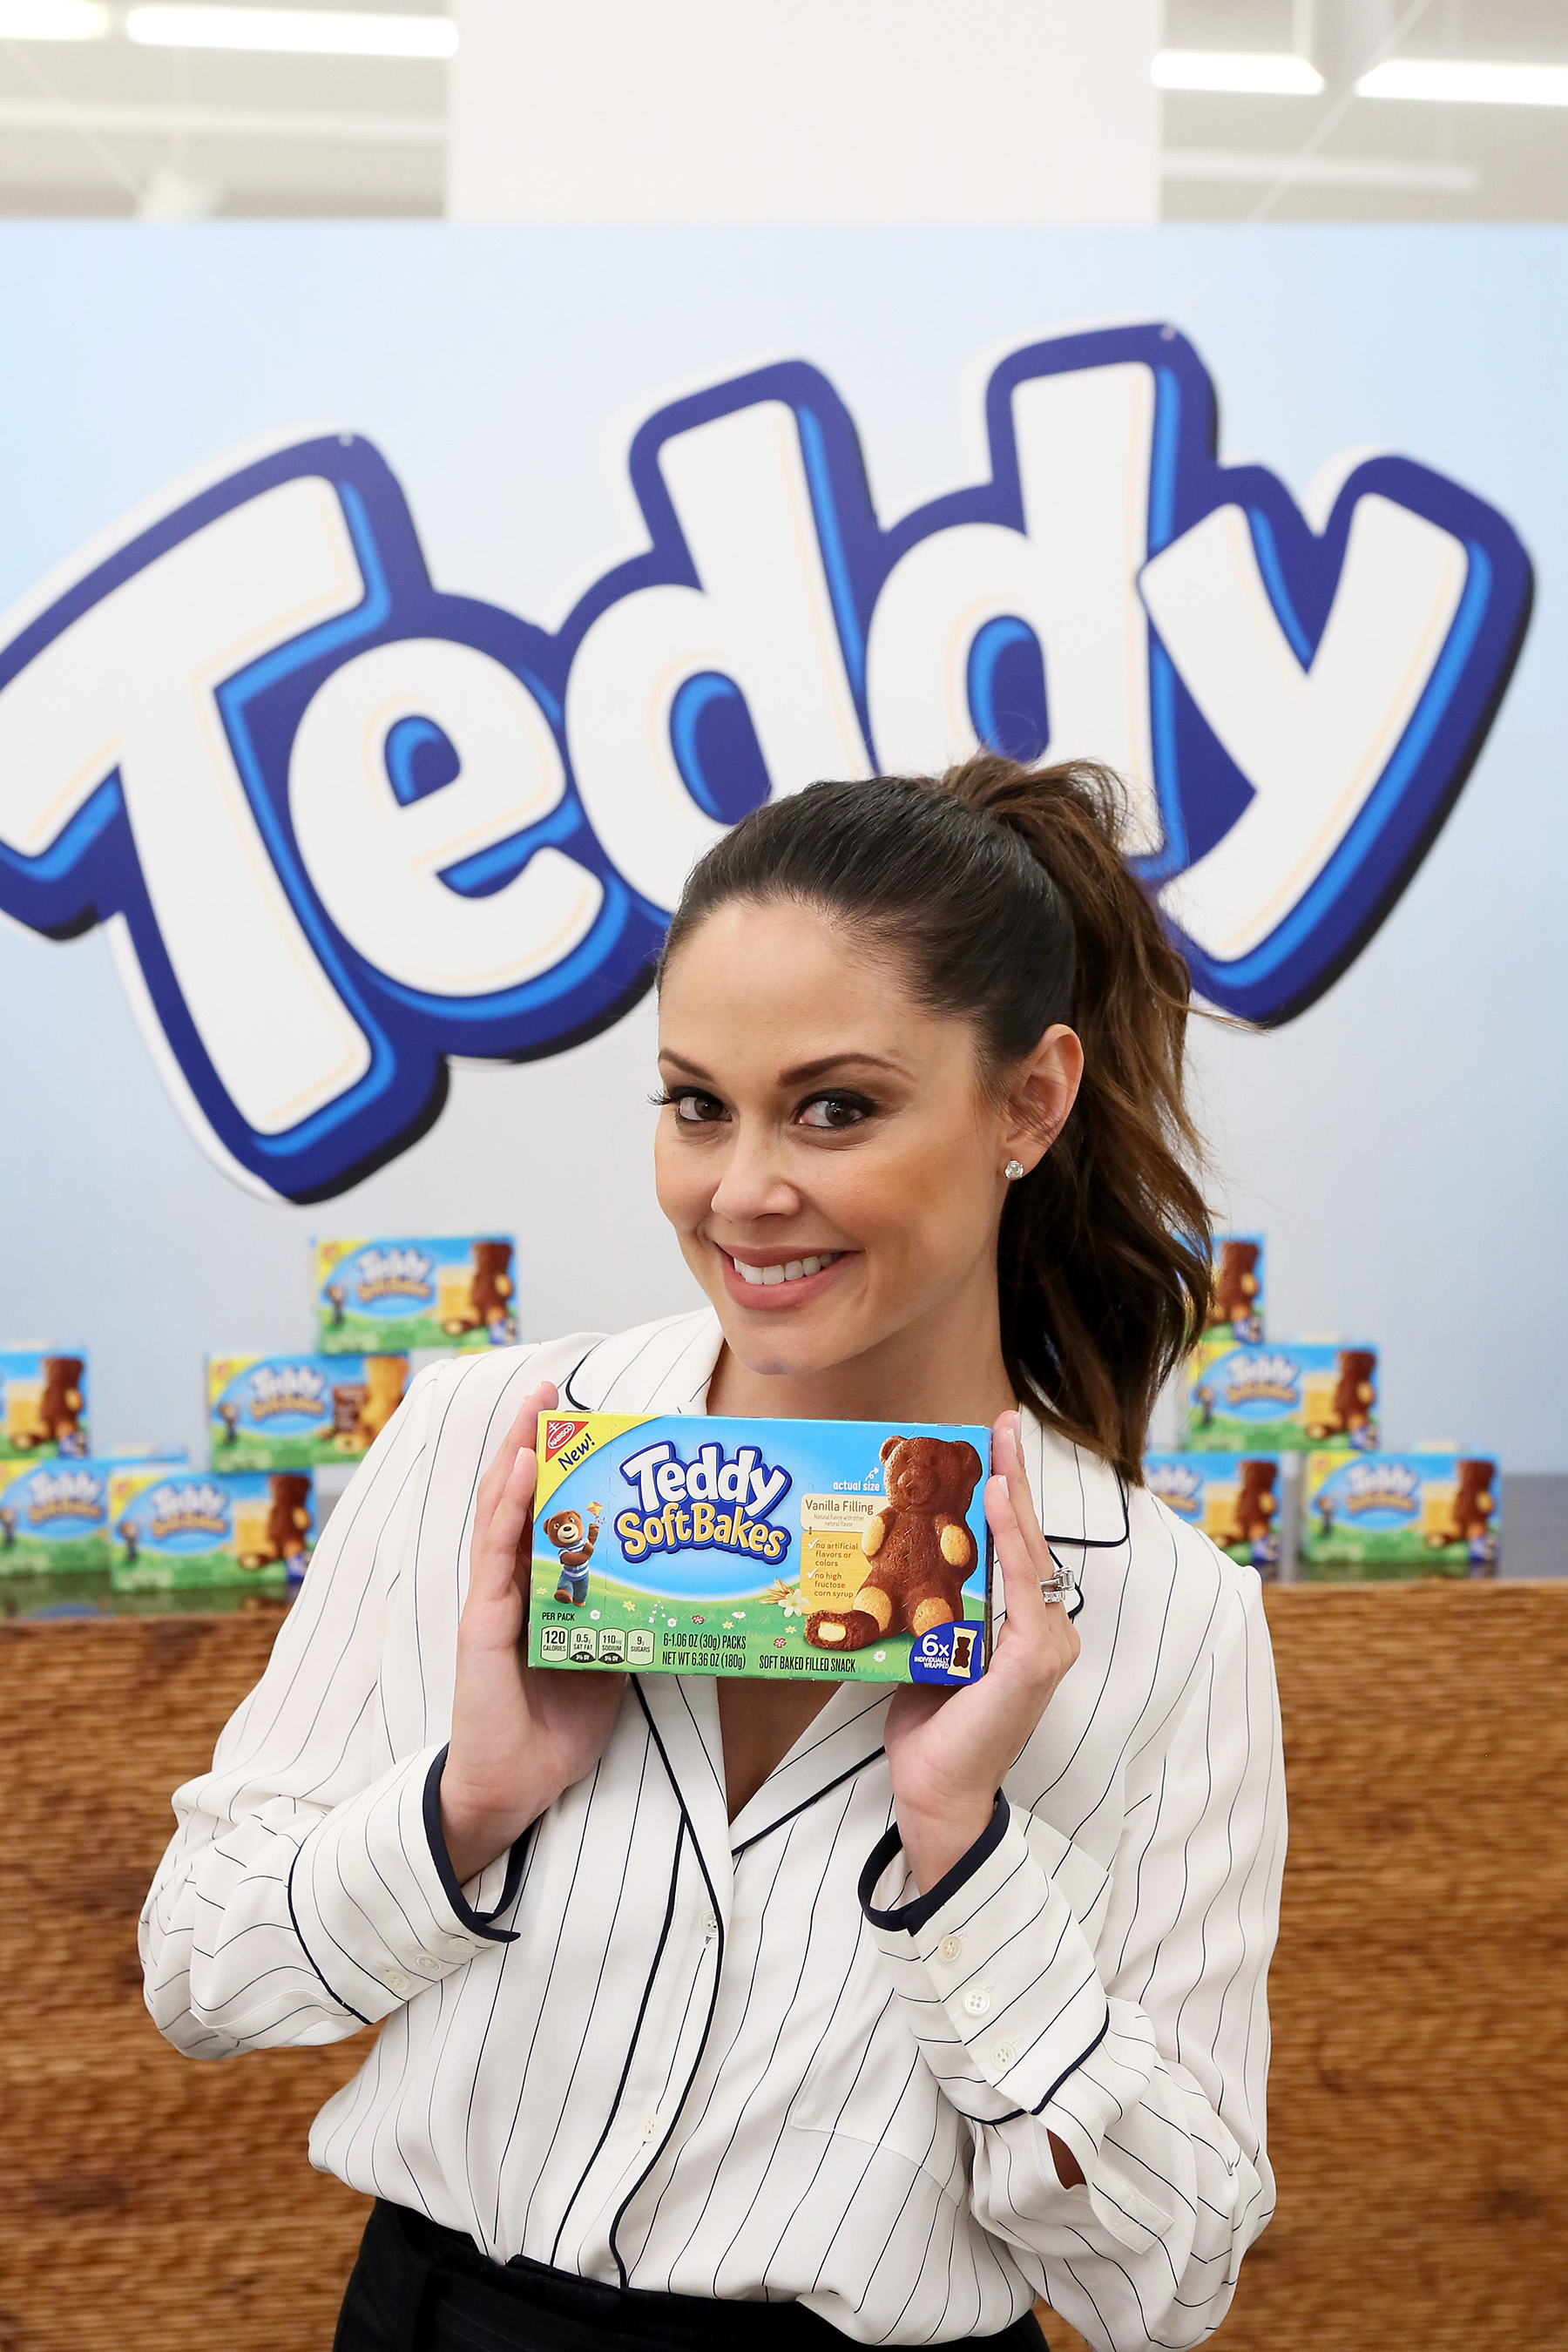 Vanessa Lachey had fun celebrating the launch of TEDDY Soft Bakes at the Children's Museum of the Arts on Wednesday, Feb. 15, 2017, in New York City. (Stuart Ramson/AP Images for Mondelez International)